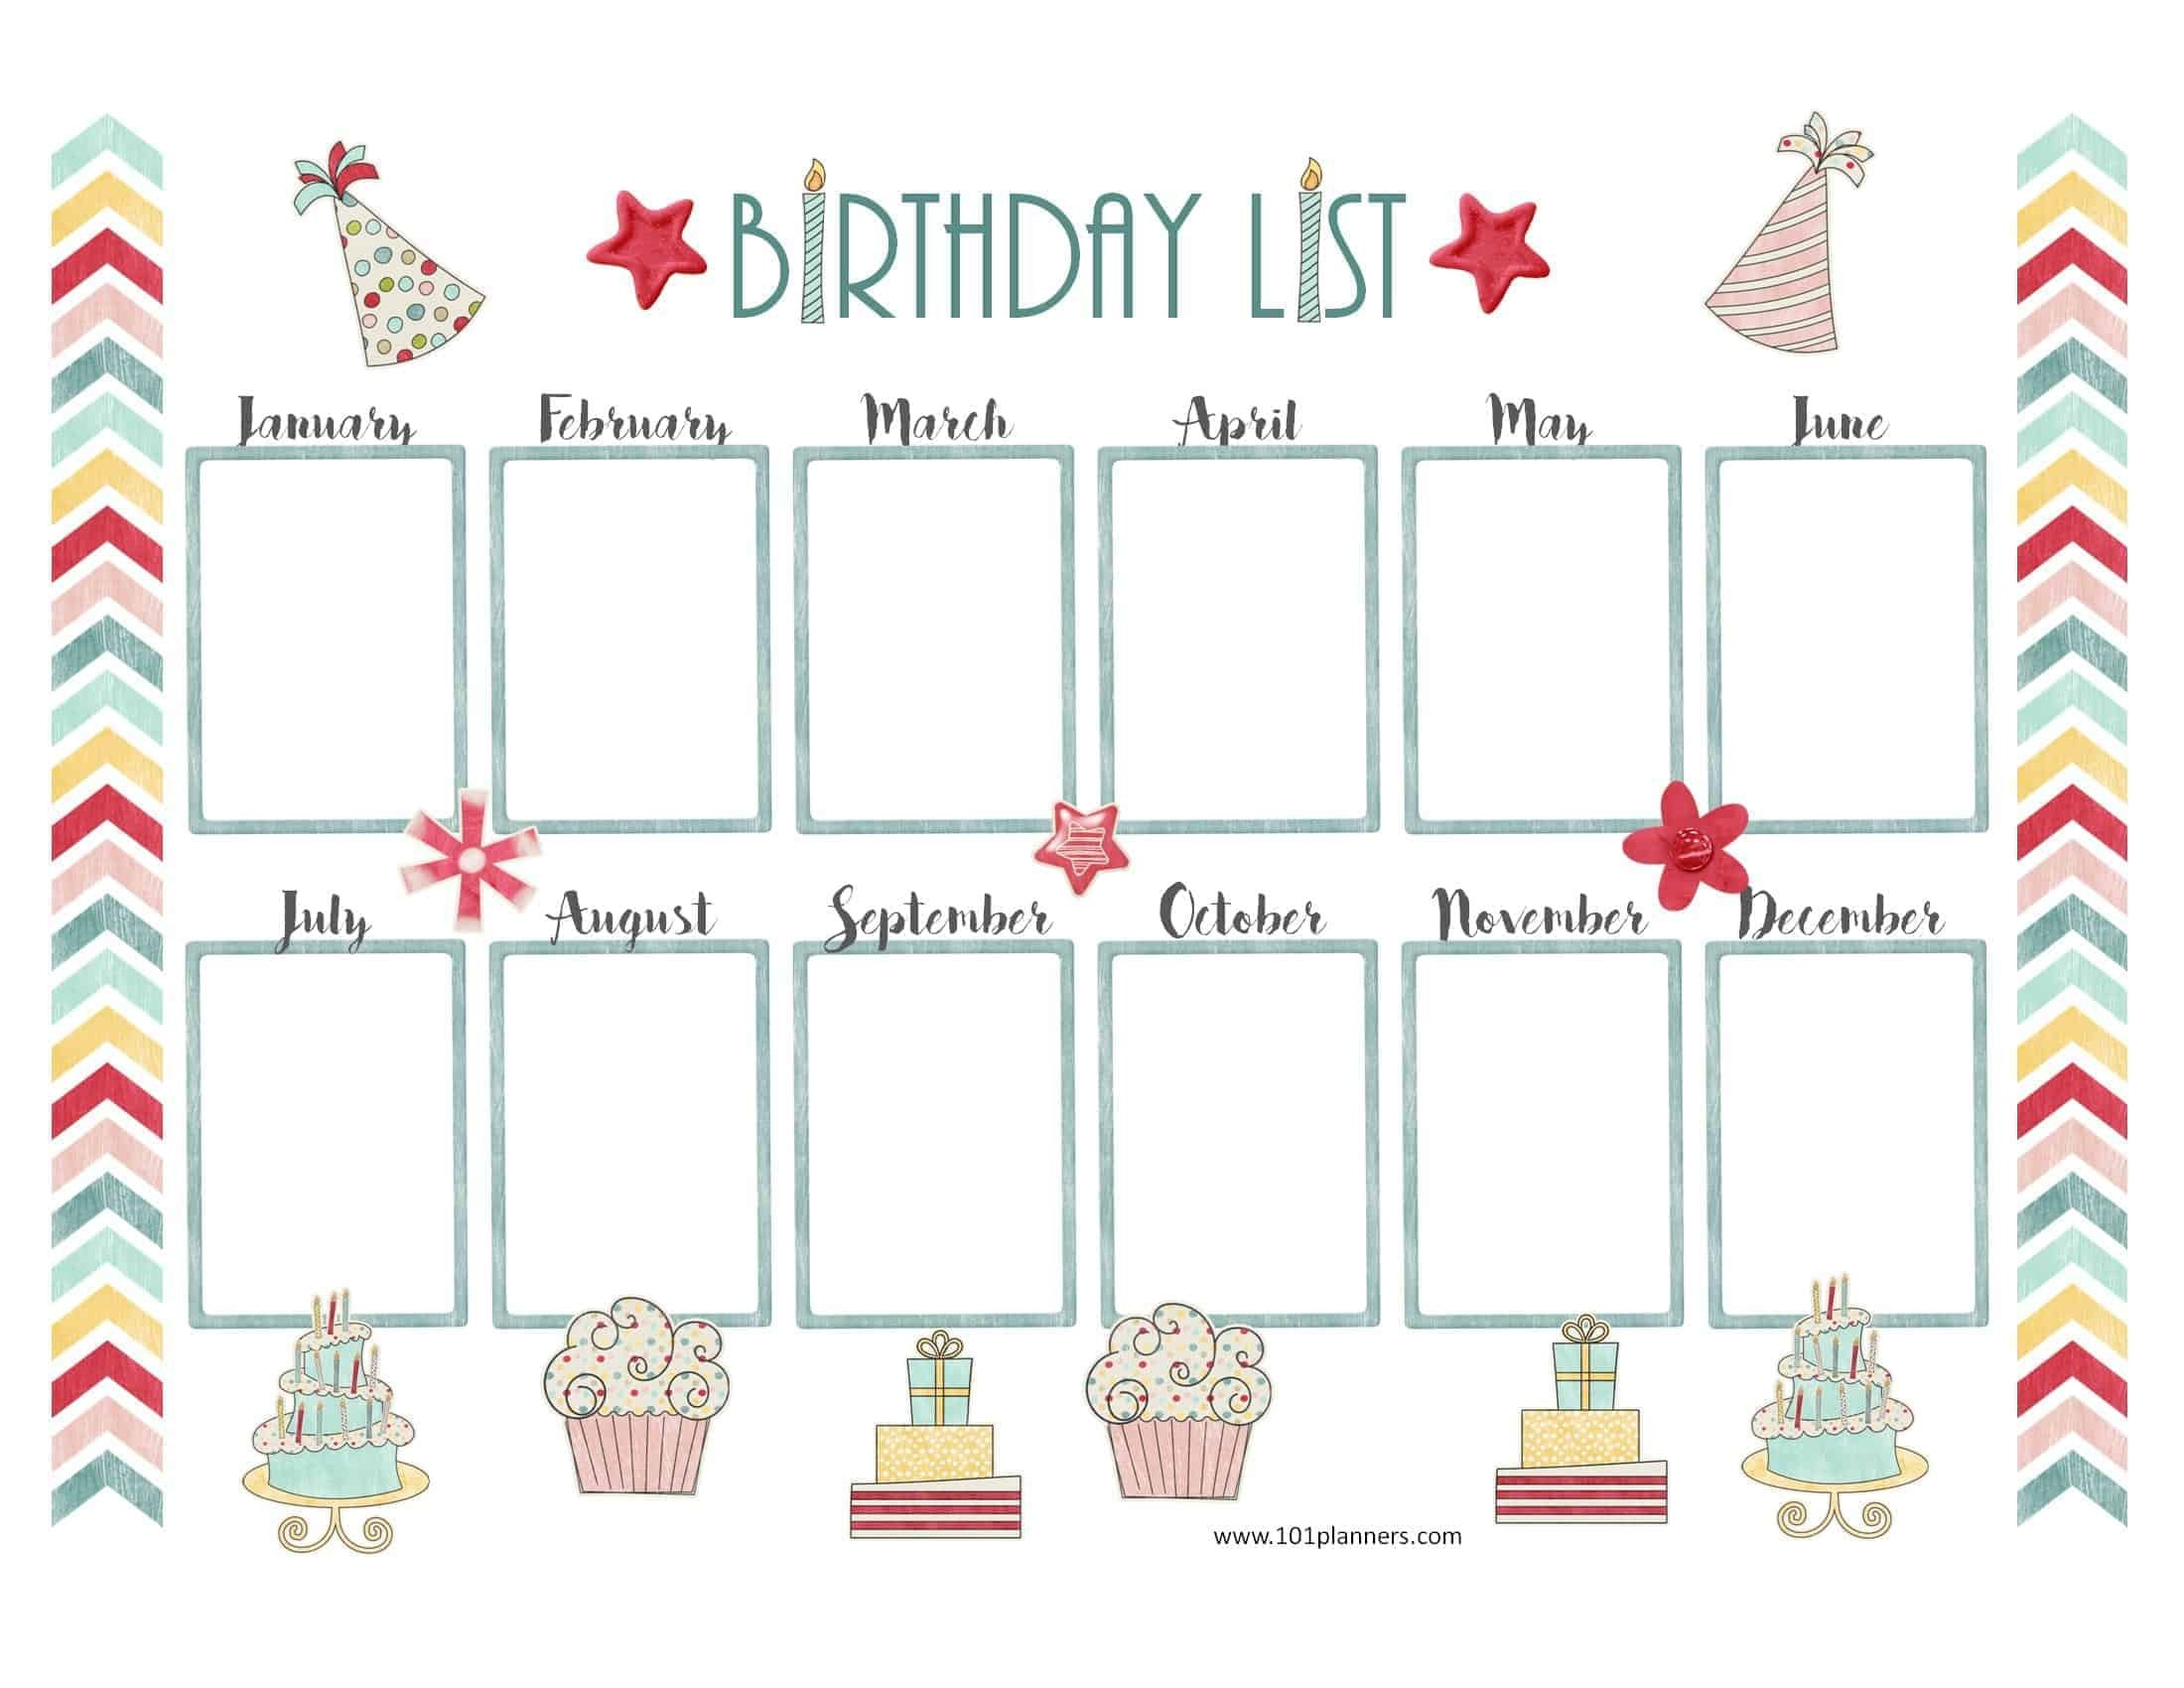 Birthday Calendar Template Birthday Calendar Fill In Online